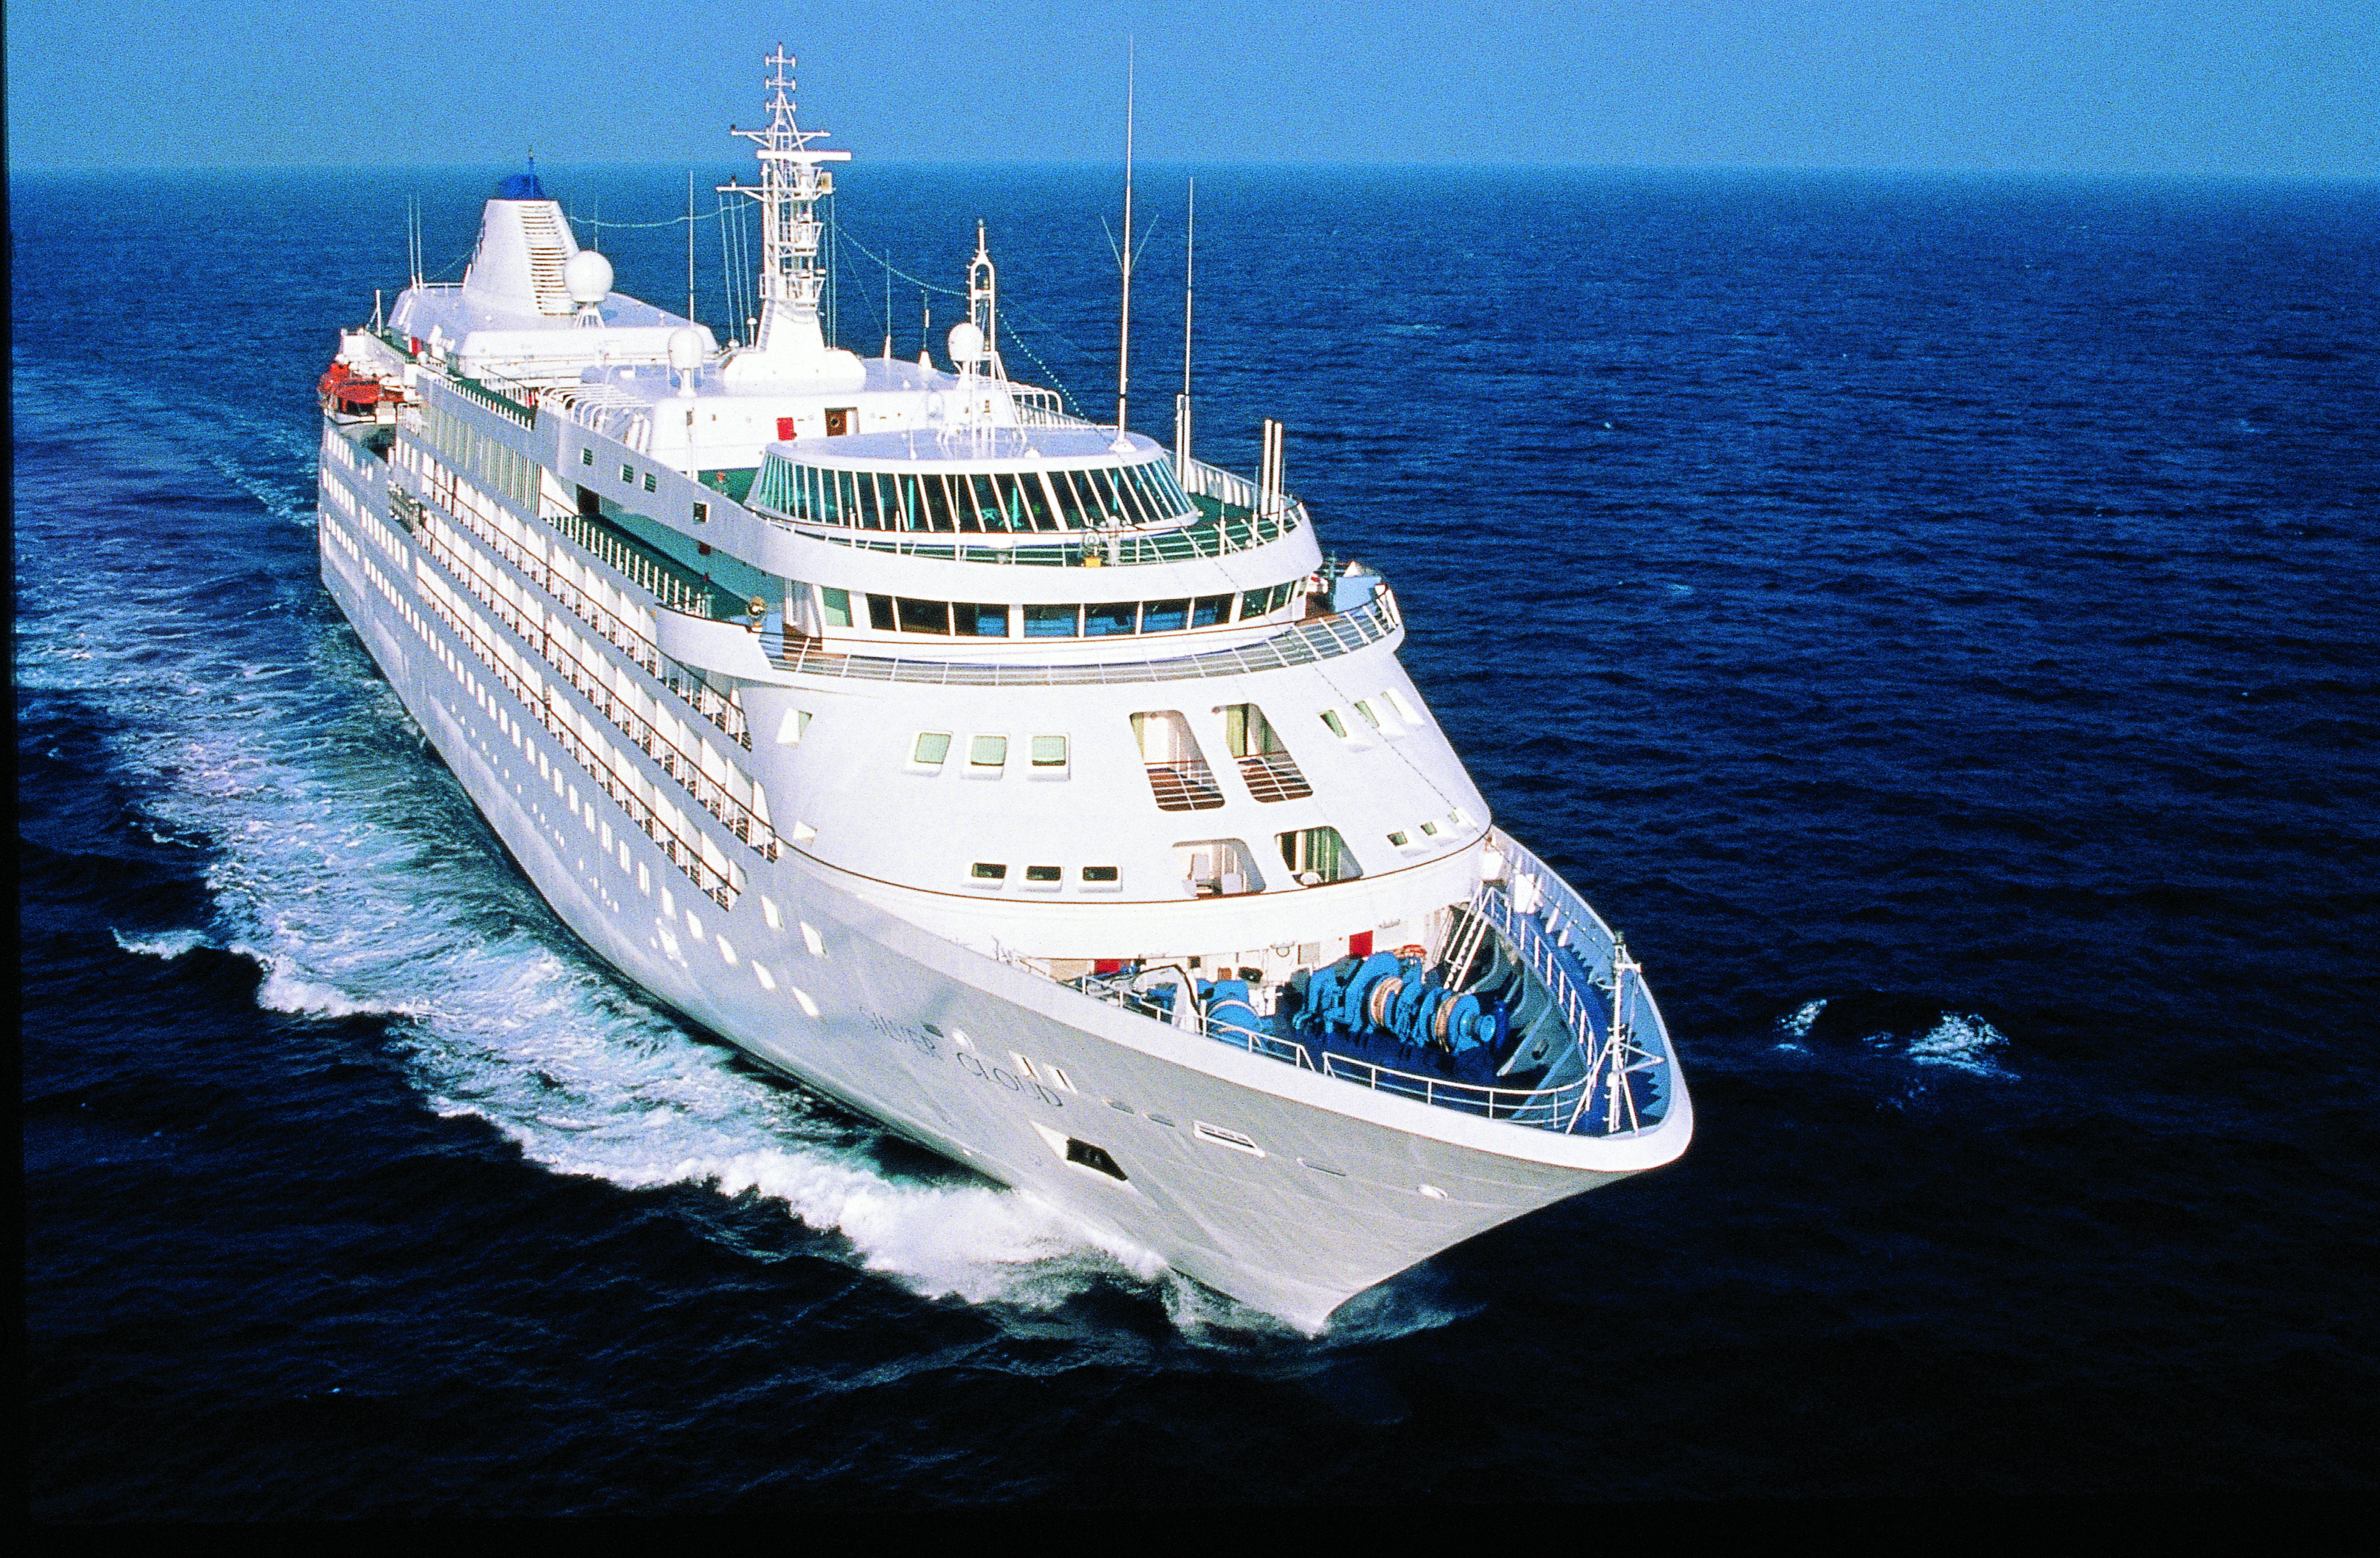 Silver Cloud Cruise Ship Reviews UPDATED - Cruise ship silver cloud